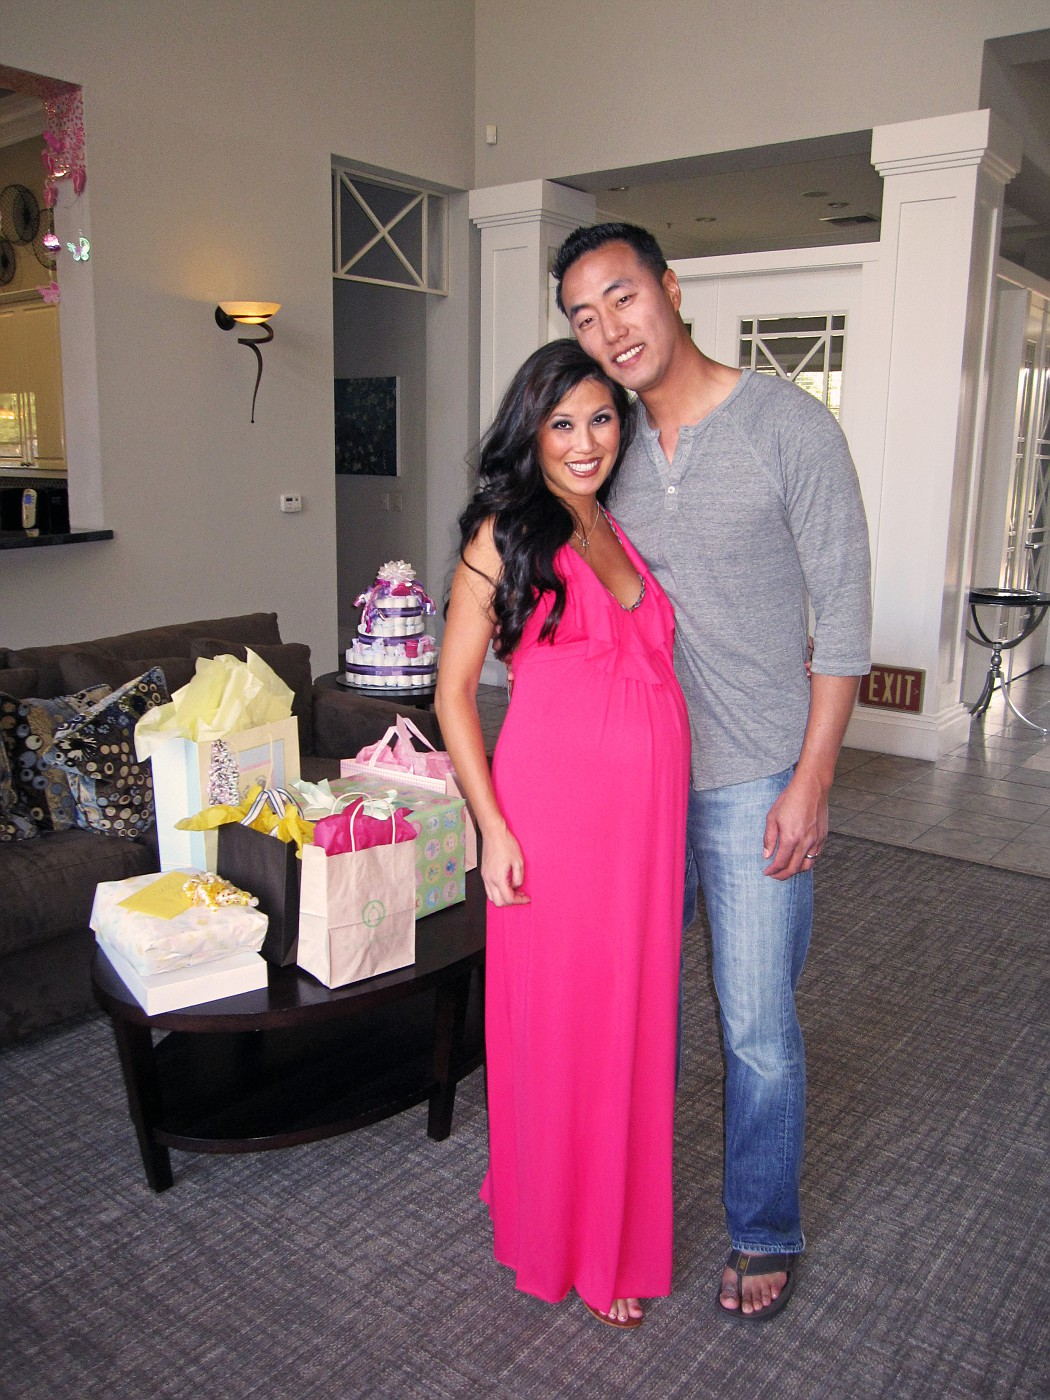 Our baby shower photo 1